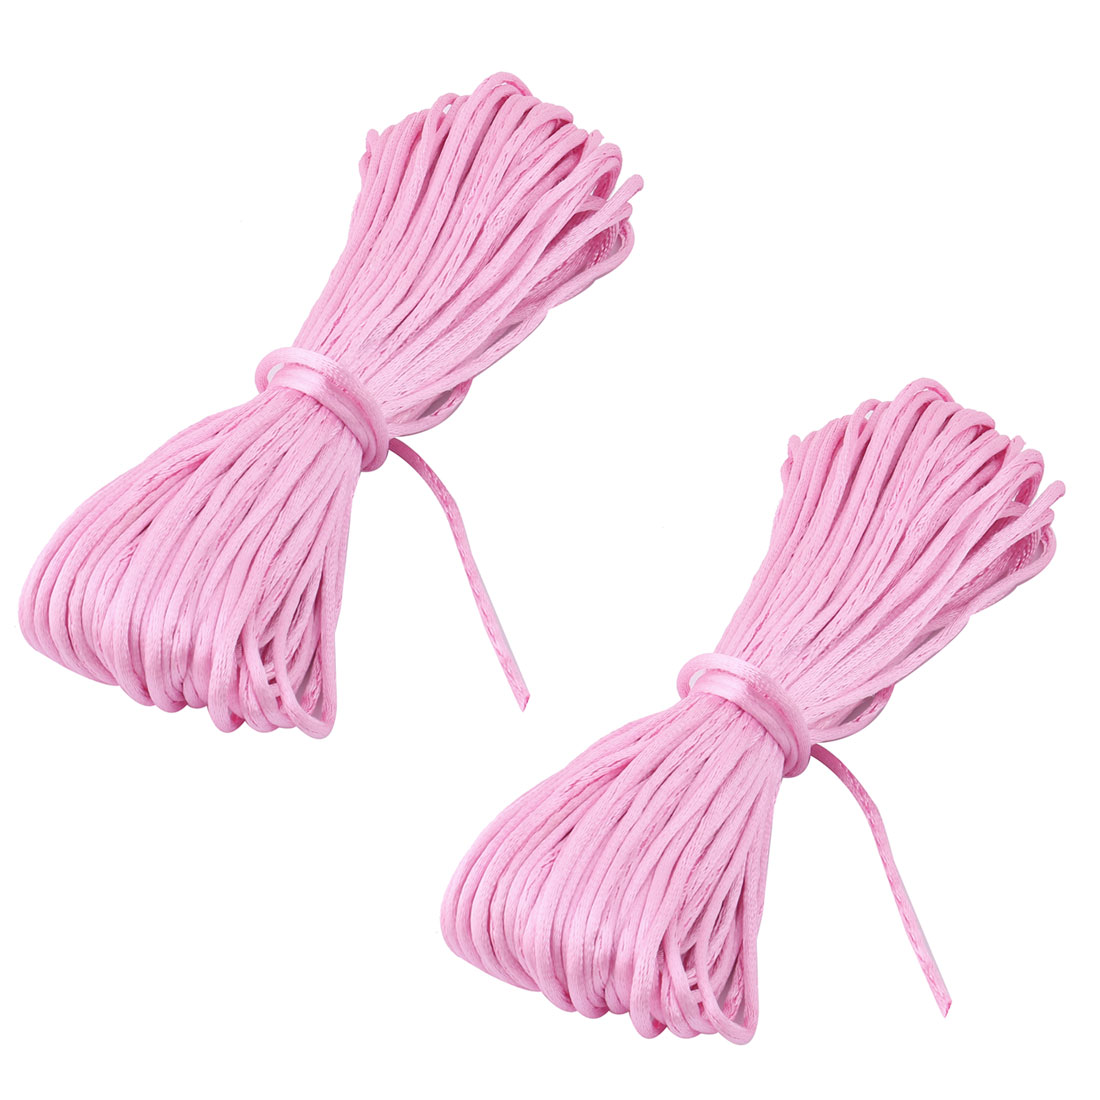 Festival Nylon Handmade Craft DIY Chinese Knot Cord String Magenta 22 Yards 2pcs